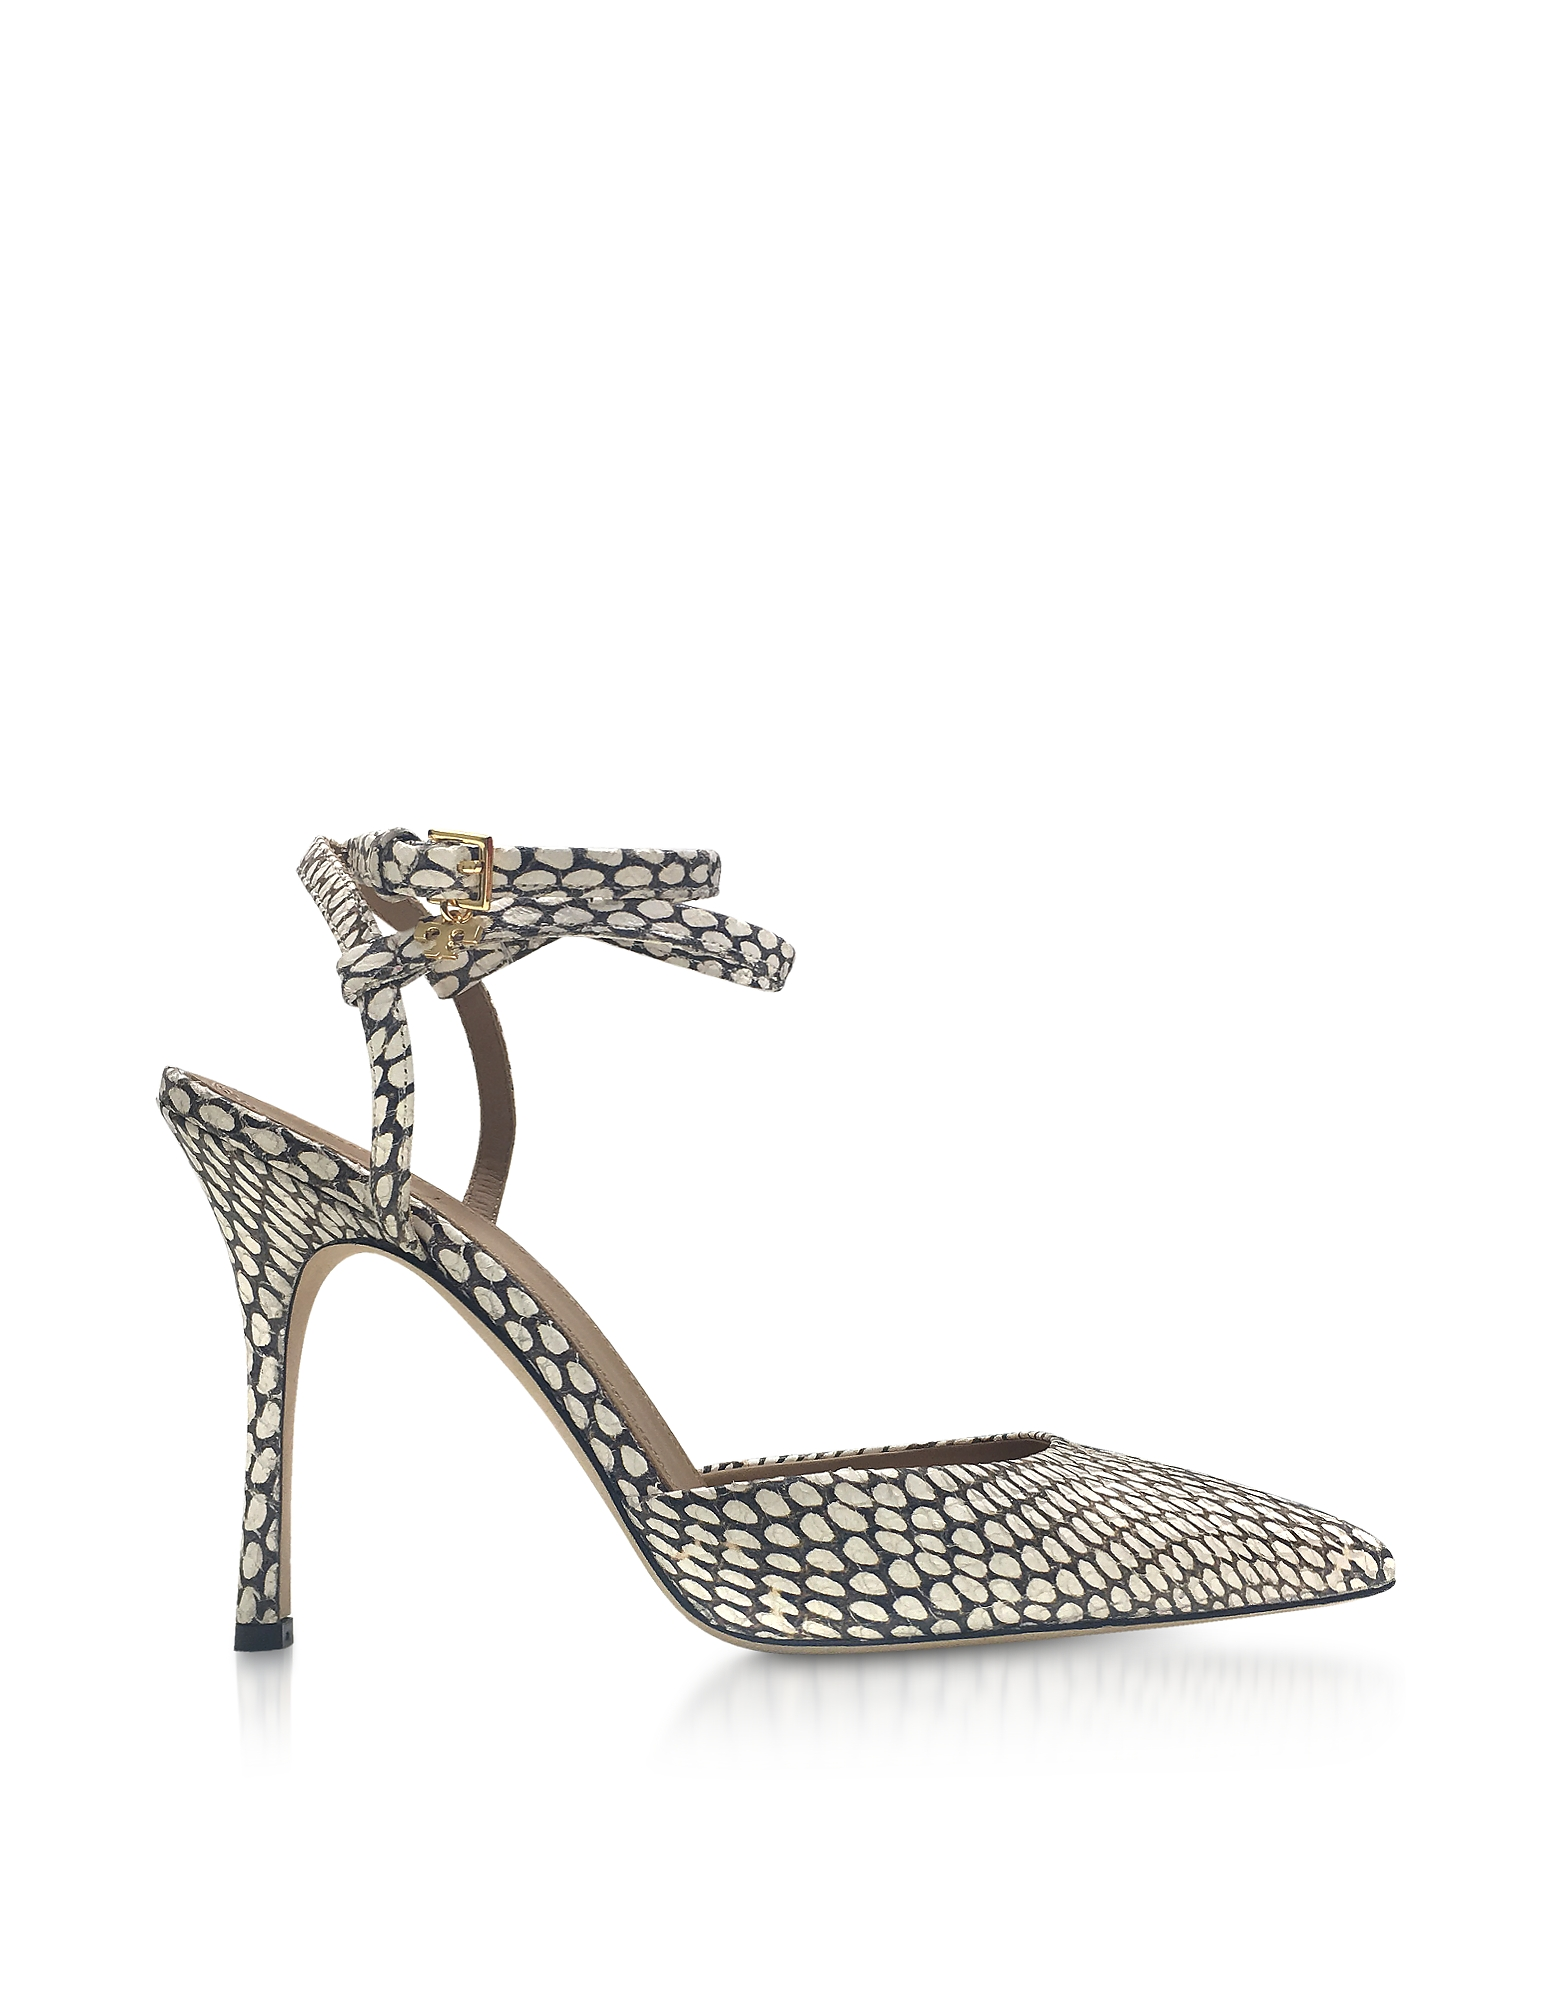 Tory Burch Shoes, King Cobra Penelope 100mm Ankle Strap Pump